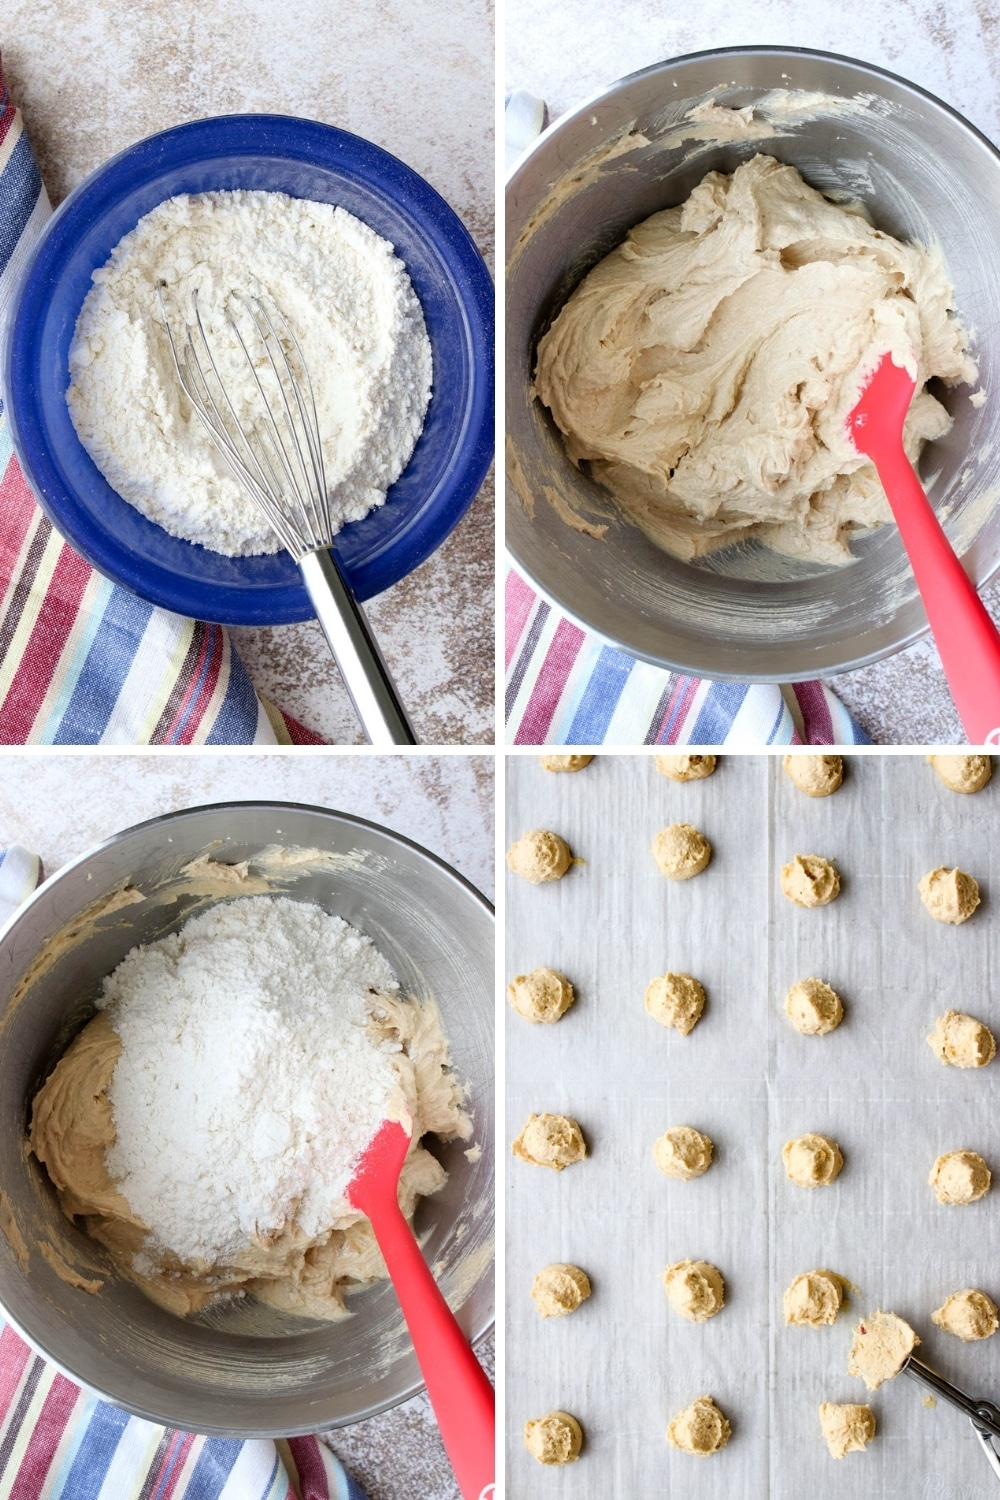 Photo showing the steps to make peanut butter and jelly cookies